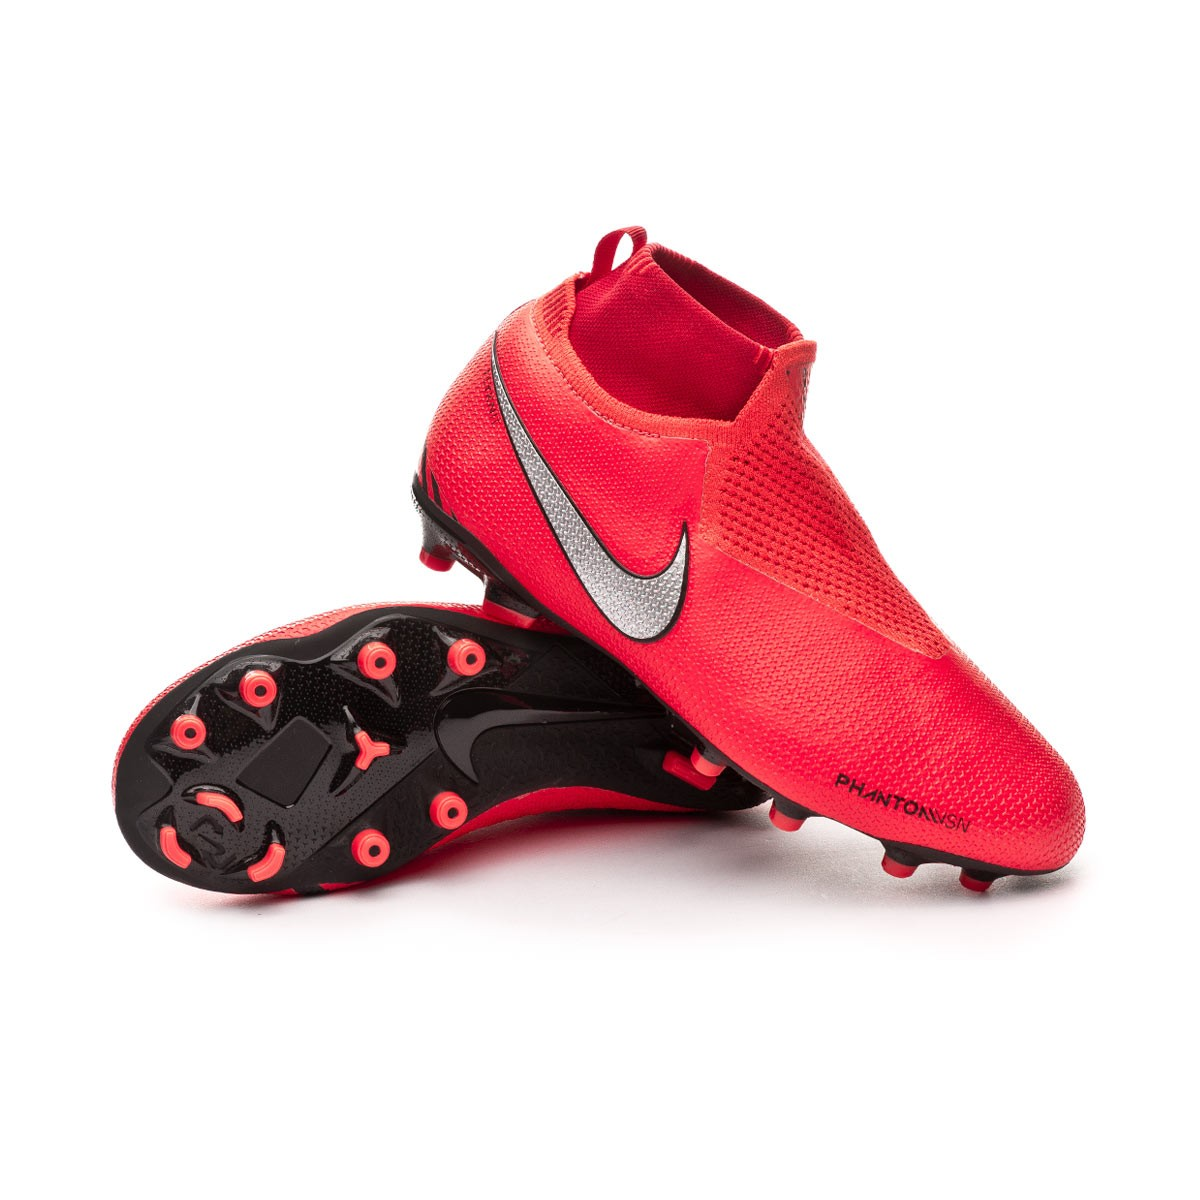 247e1236d Football Boots Nike Kids Phantom Vision Elite DF FG MG Bright ...